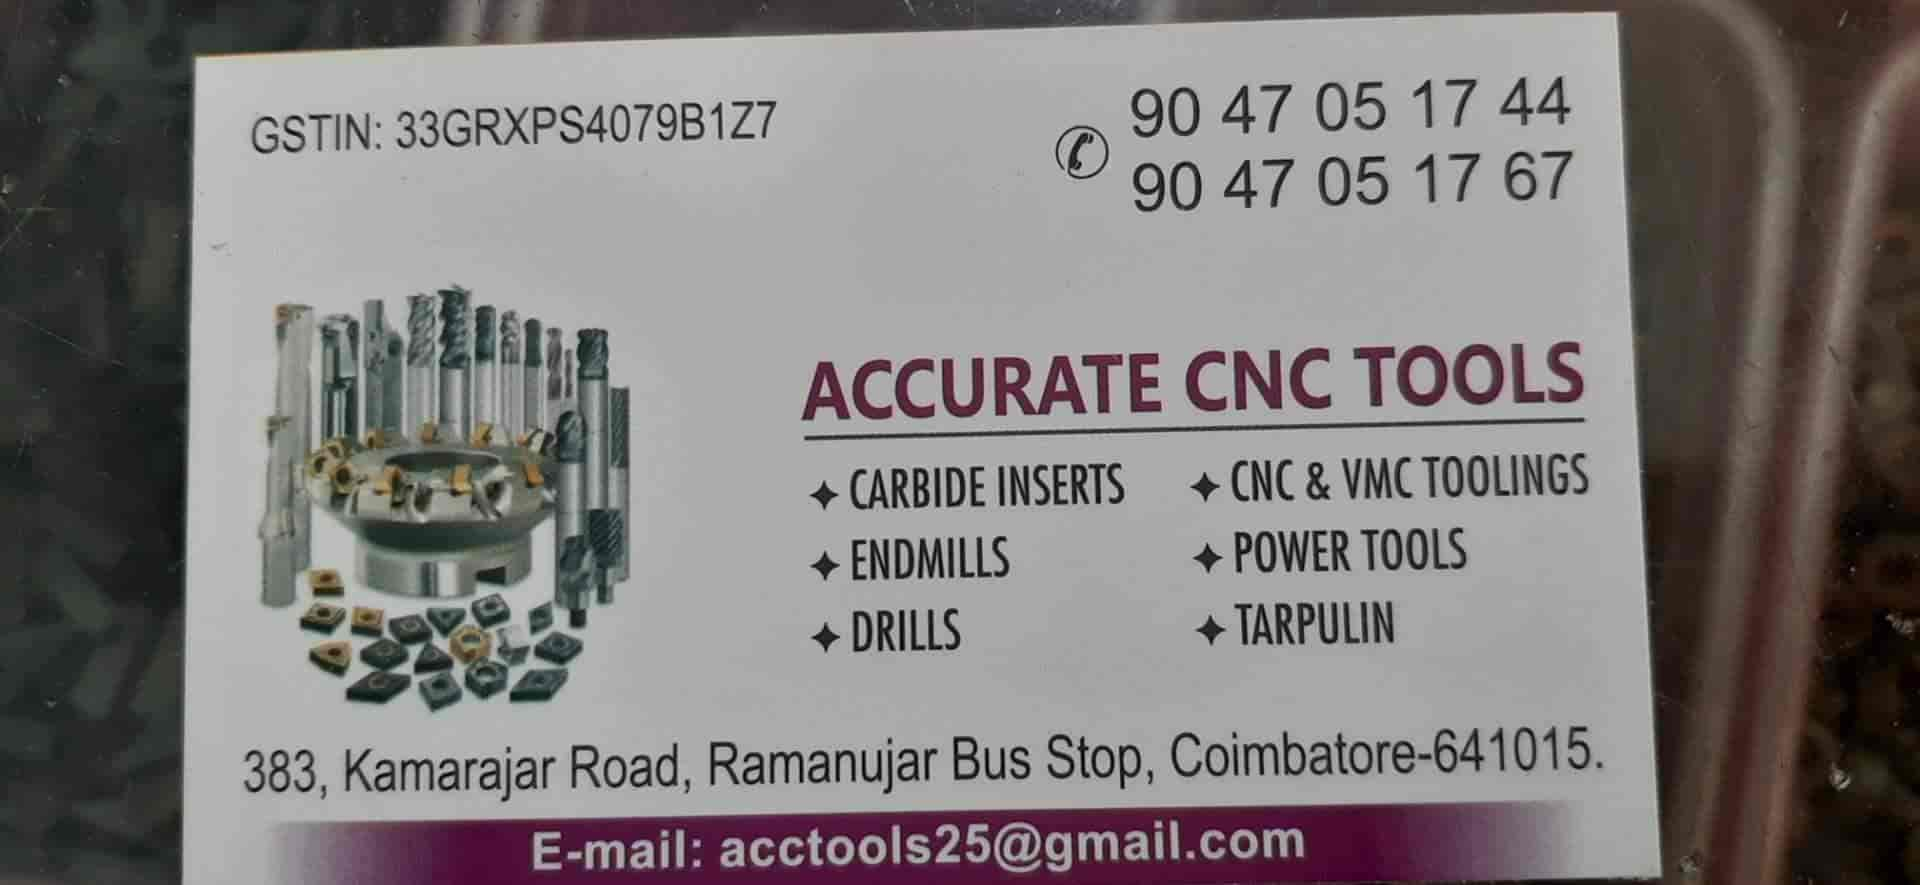 Accurate Cnc Tools, Uppilipalayam - CNC Tool Dealers in